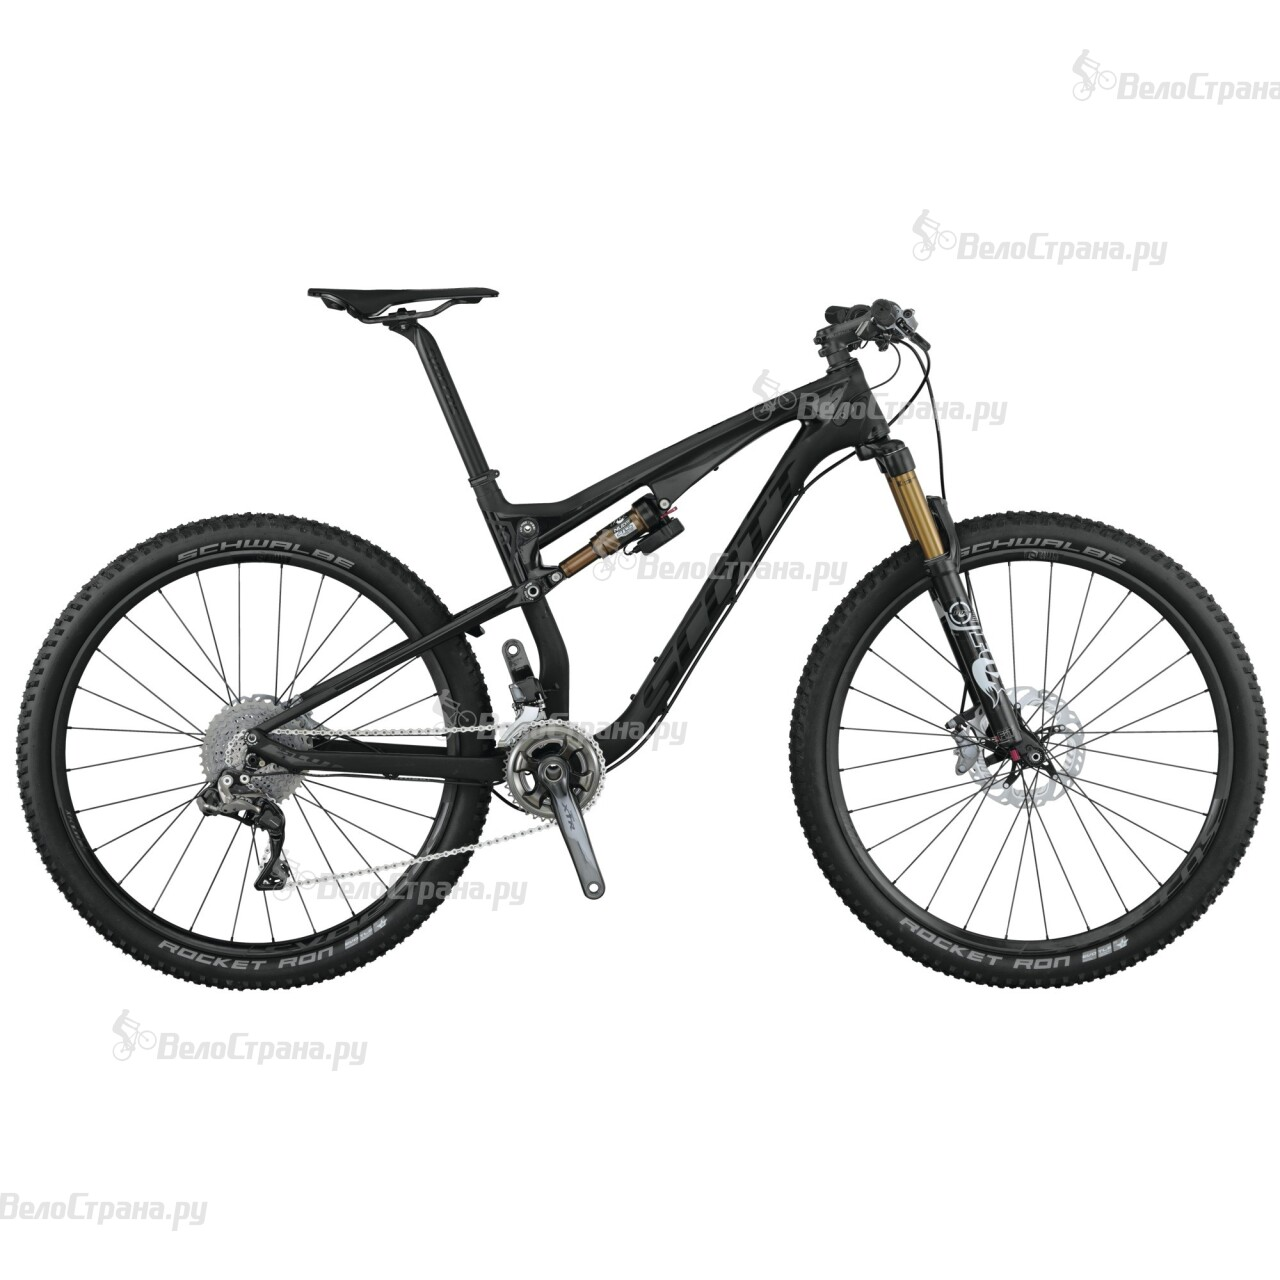 Велосипед Scott SPARK 700 ULTIMATE DI2 (2015) велосипед scott spark rc 900 ultimate  2017